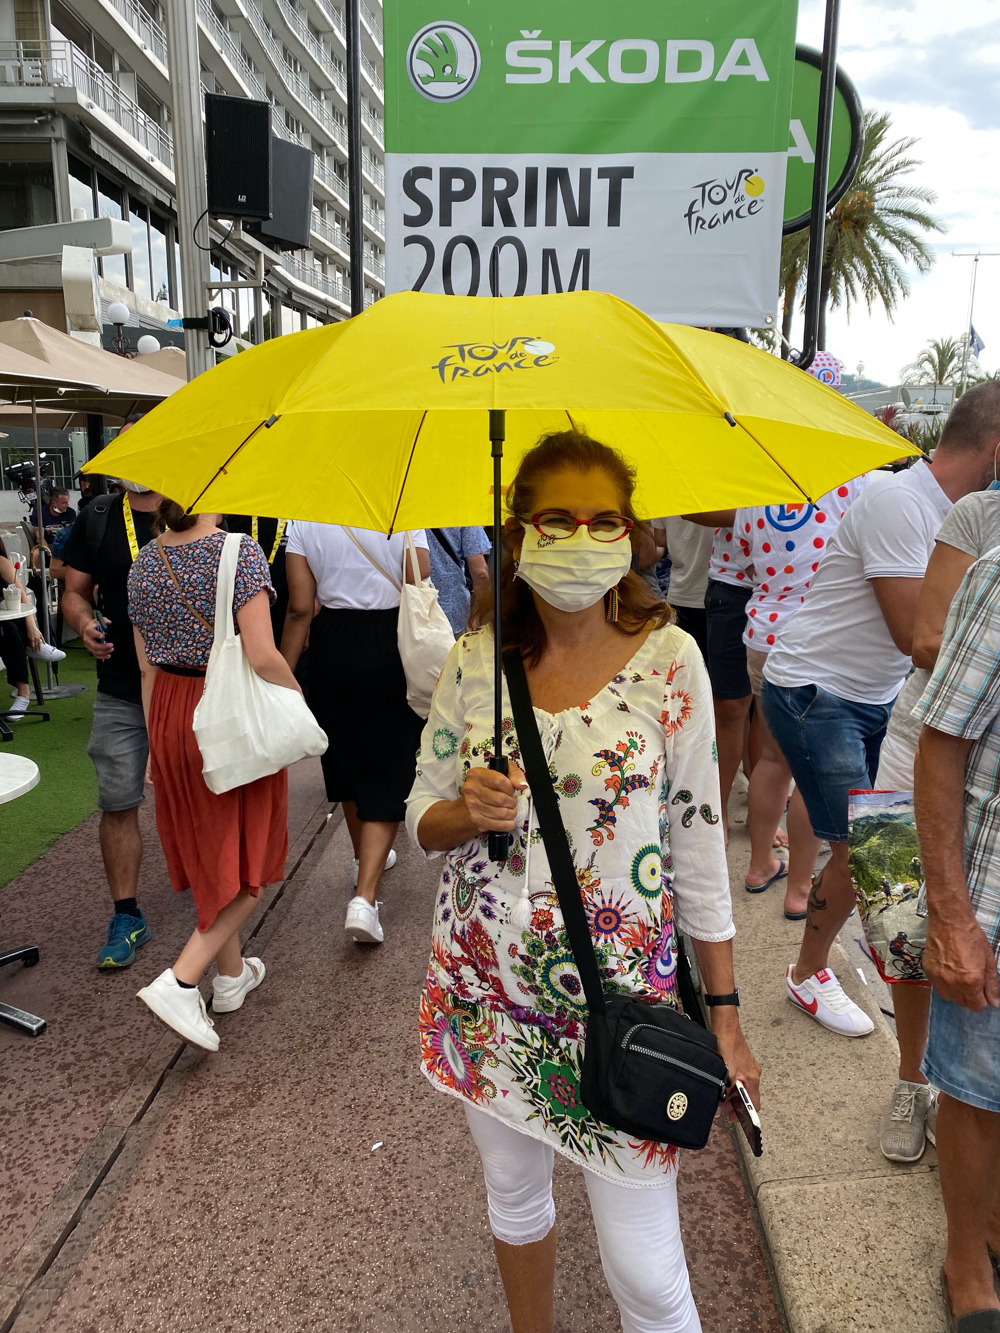 Adrian with Her Yellow Tour de France Umbrella